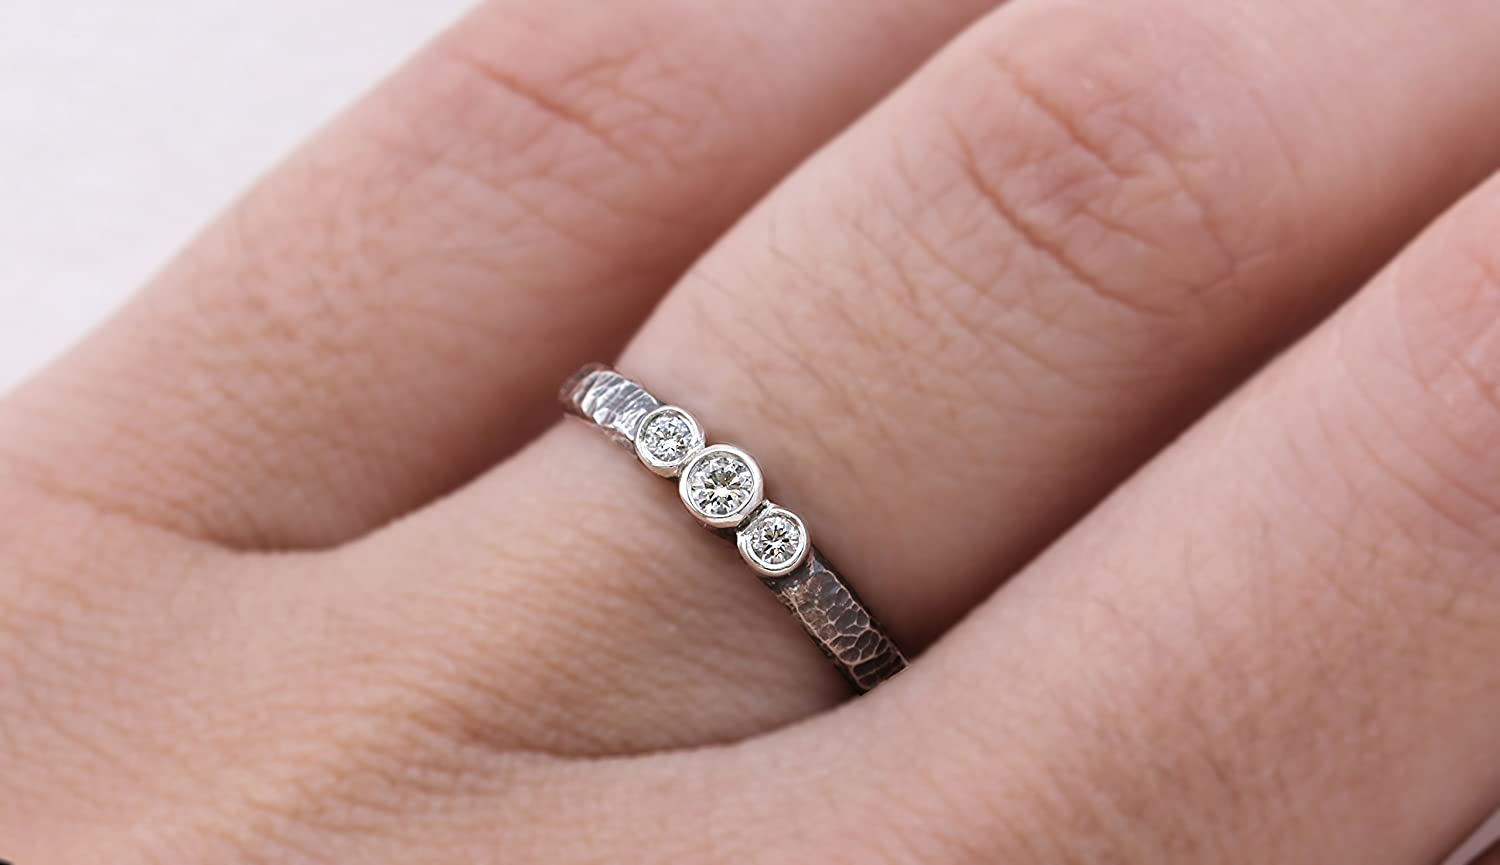 Amazon.com: Textured Ombre Three Diamond Ring - Conflict Free ...